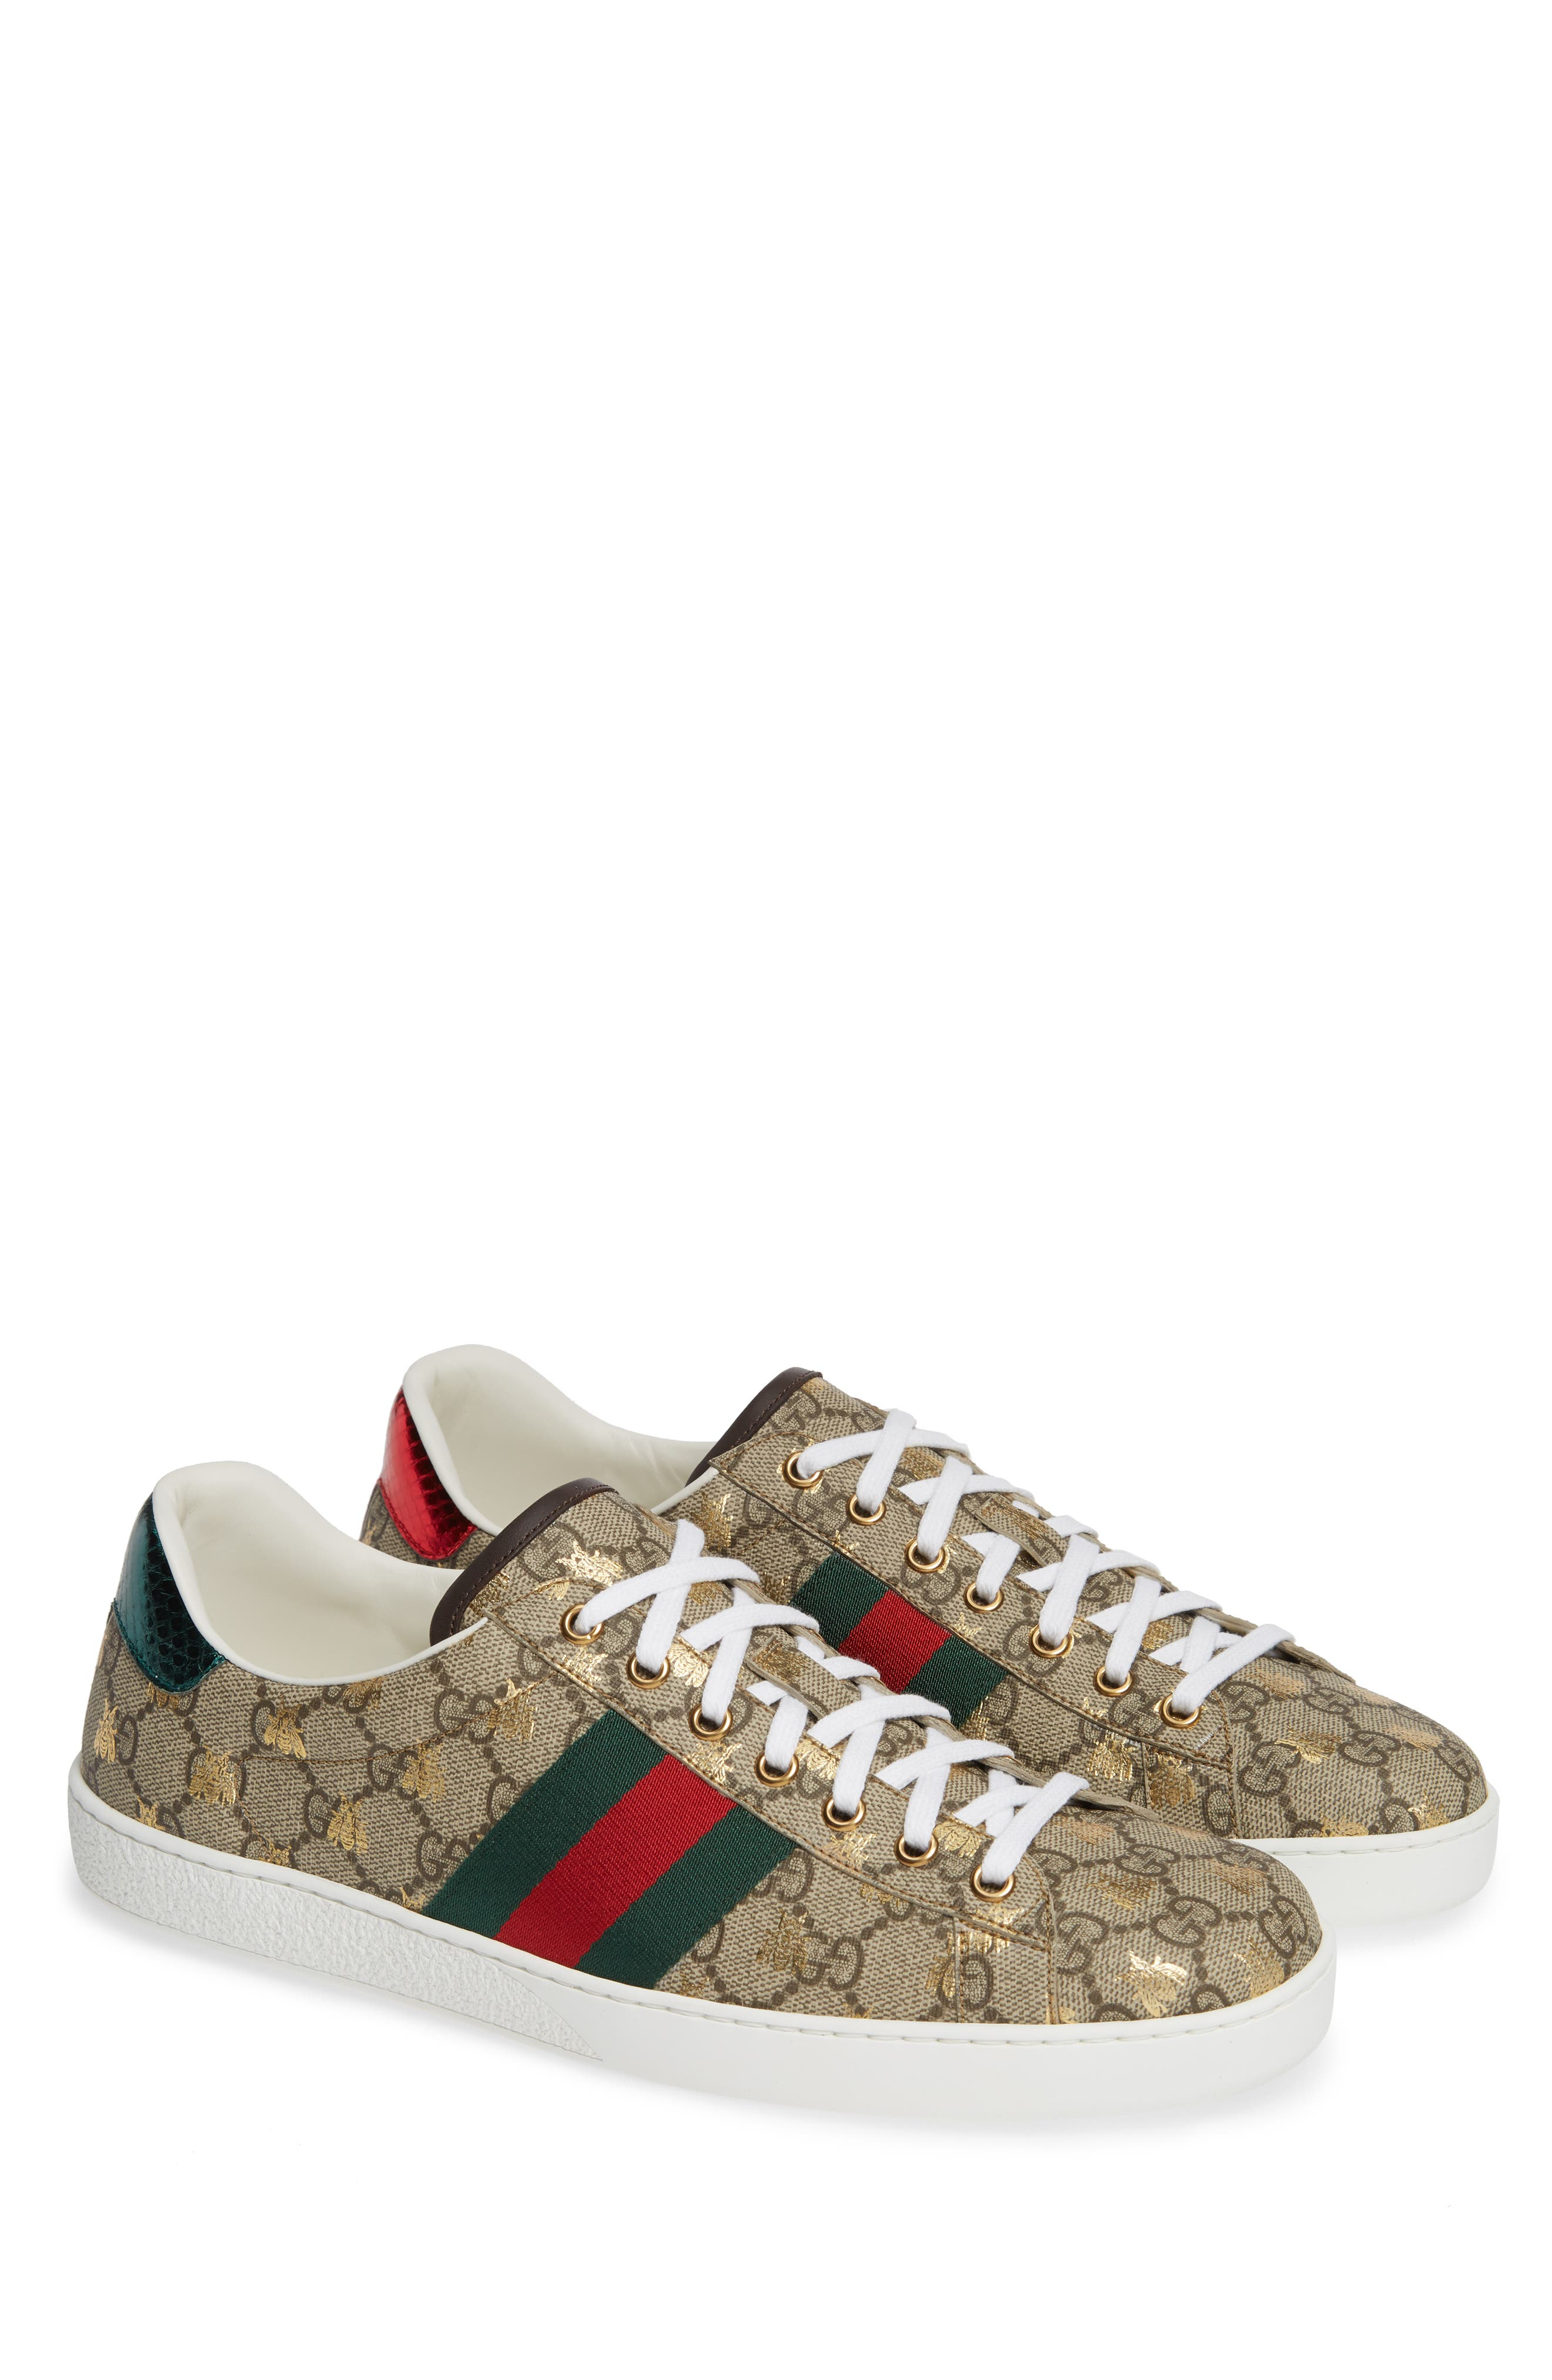 GUCCI, New Ace GG Supreme Sneaker, Main thumbnail 1, color, BEIGE/ GOLD